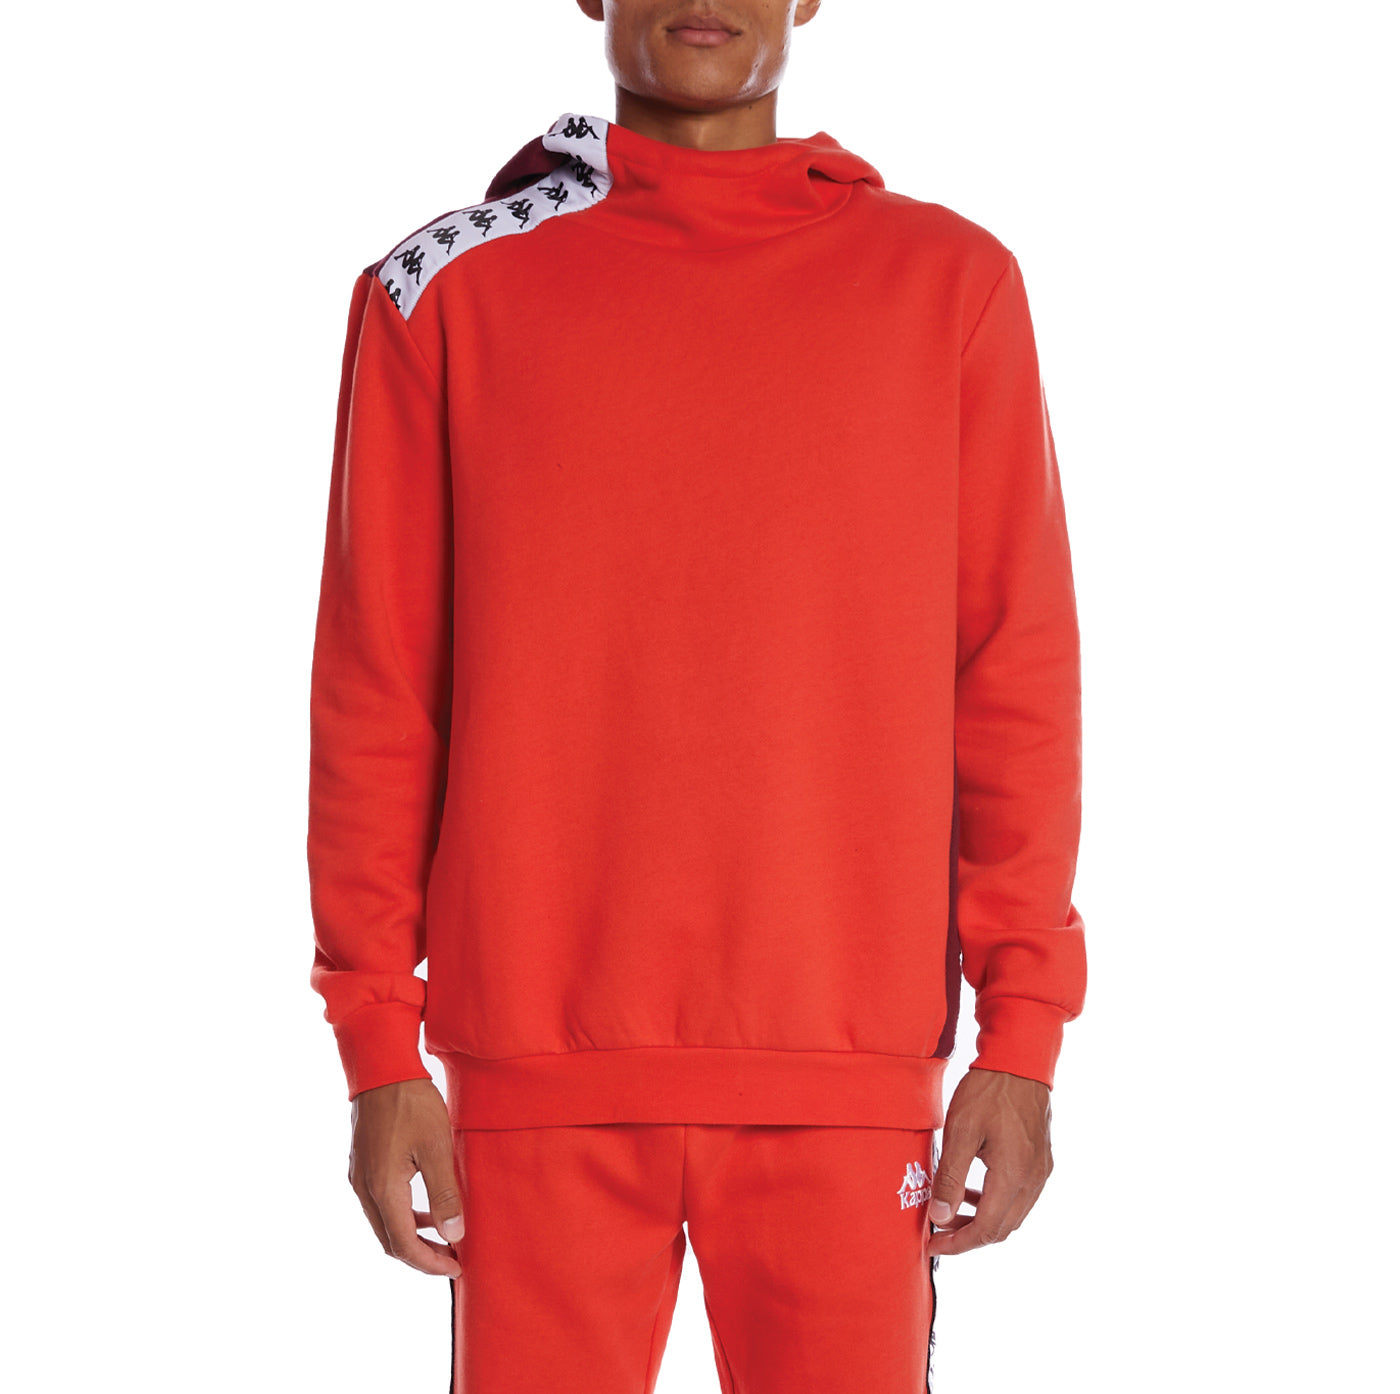 Kappa 222 Banda Delov 2 Hoodie - Orange Flame Red Dahlia White